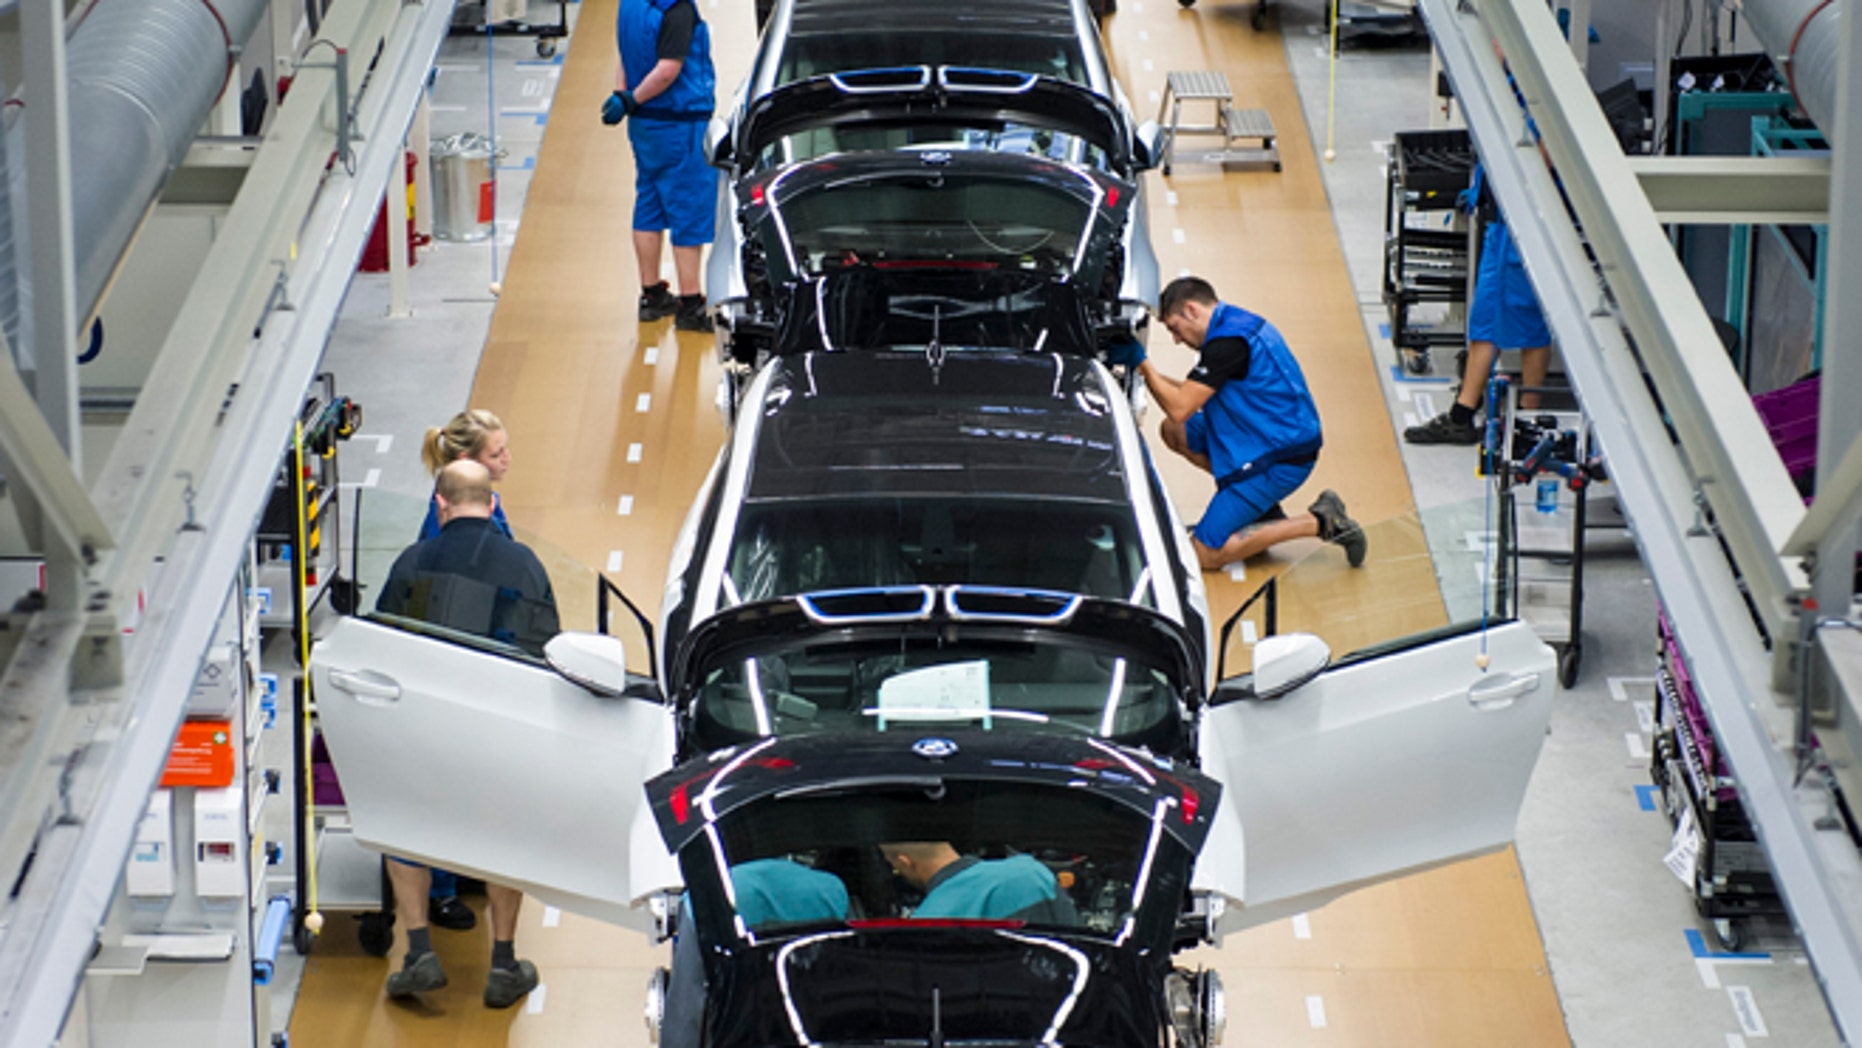 LEIPZIG, GERMANY - SEPTEMBER 18:  Workers assemble a new BMW i3 electric car on the assembly line at the BMW factory on September 18, 2013 in Leipzig, Germany. The i3 is BMW's first mass market electric car and the company has invested EUR 400 million into its production at the Leipzig factory. (Photo by Jens Schlueter/Getty Images)